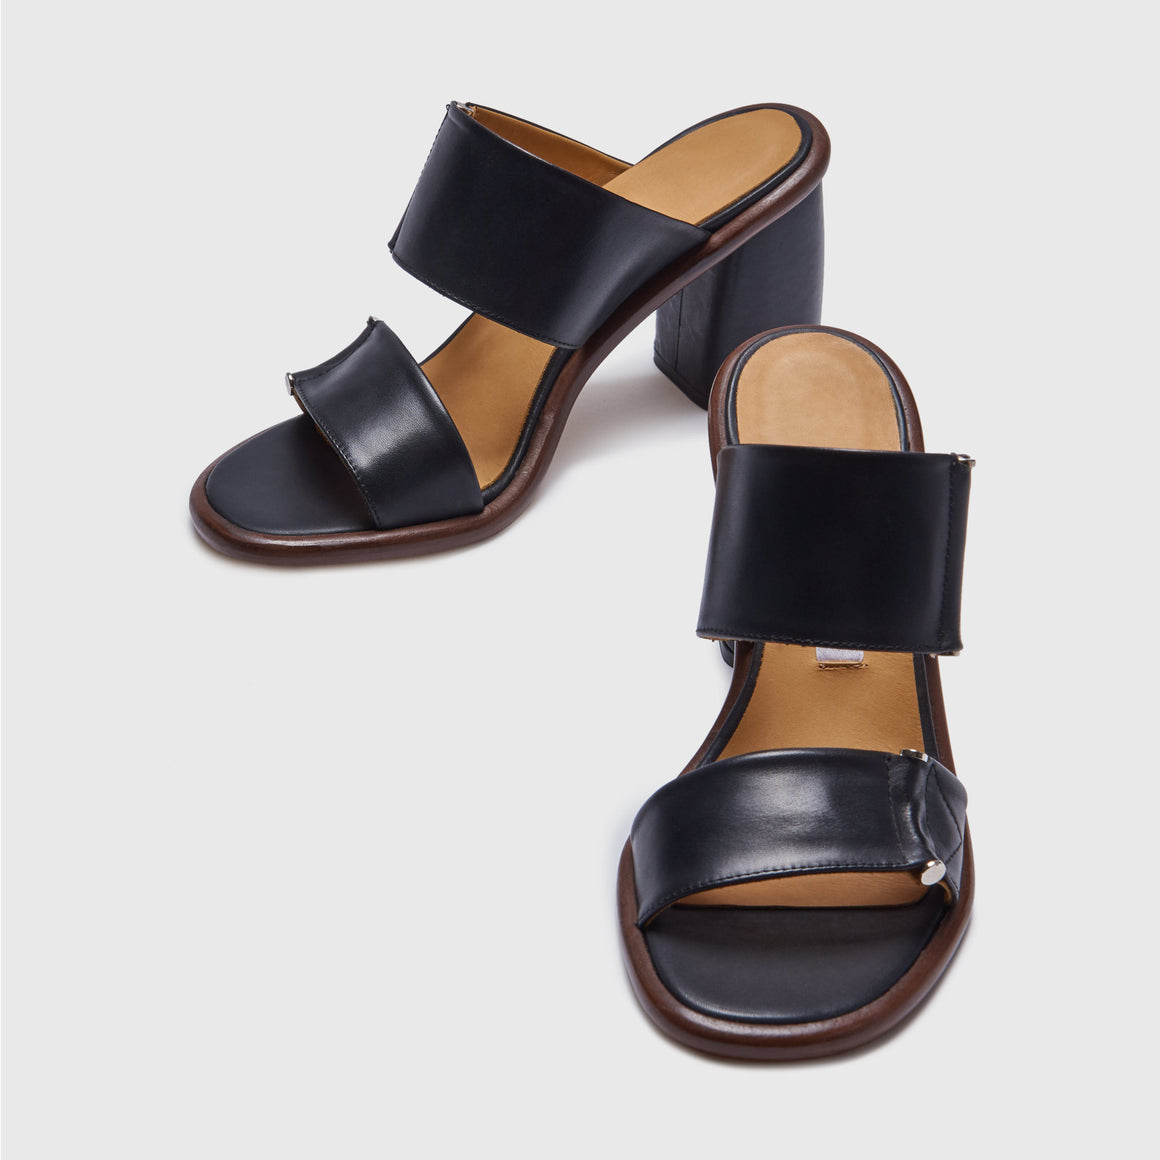 MIISTA MIRTA MULE SANDAL SHOES BLACK TAN | PIPE AND ROW SEATTLE LOCAL